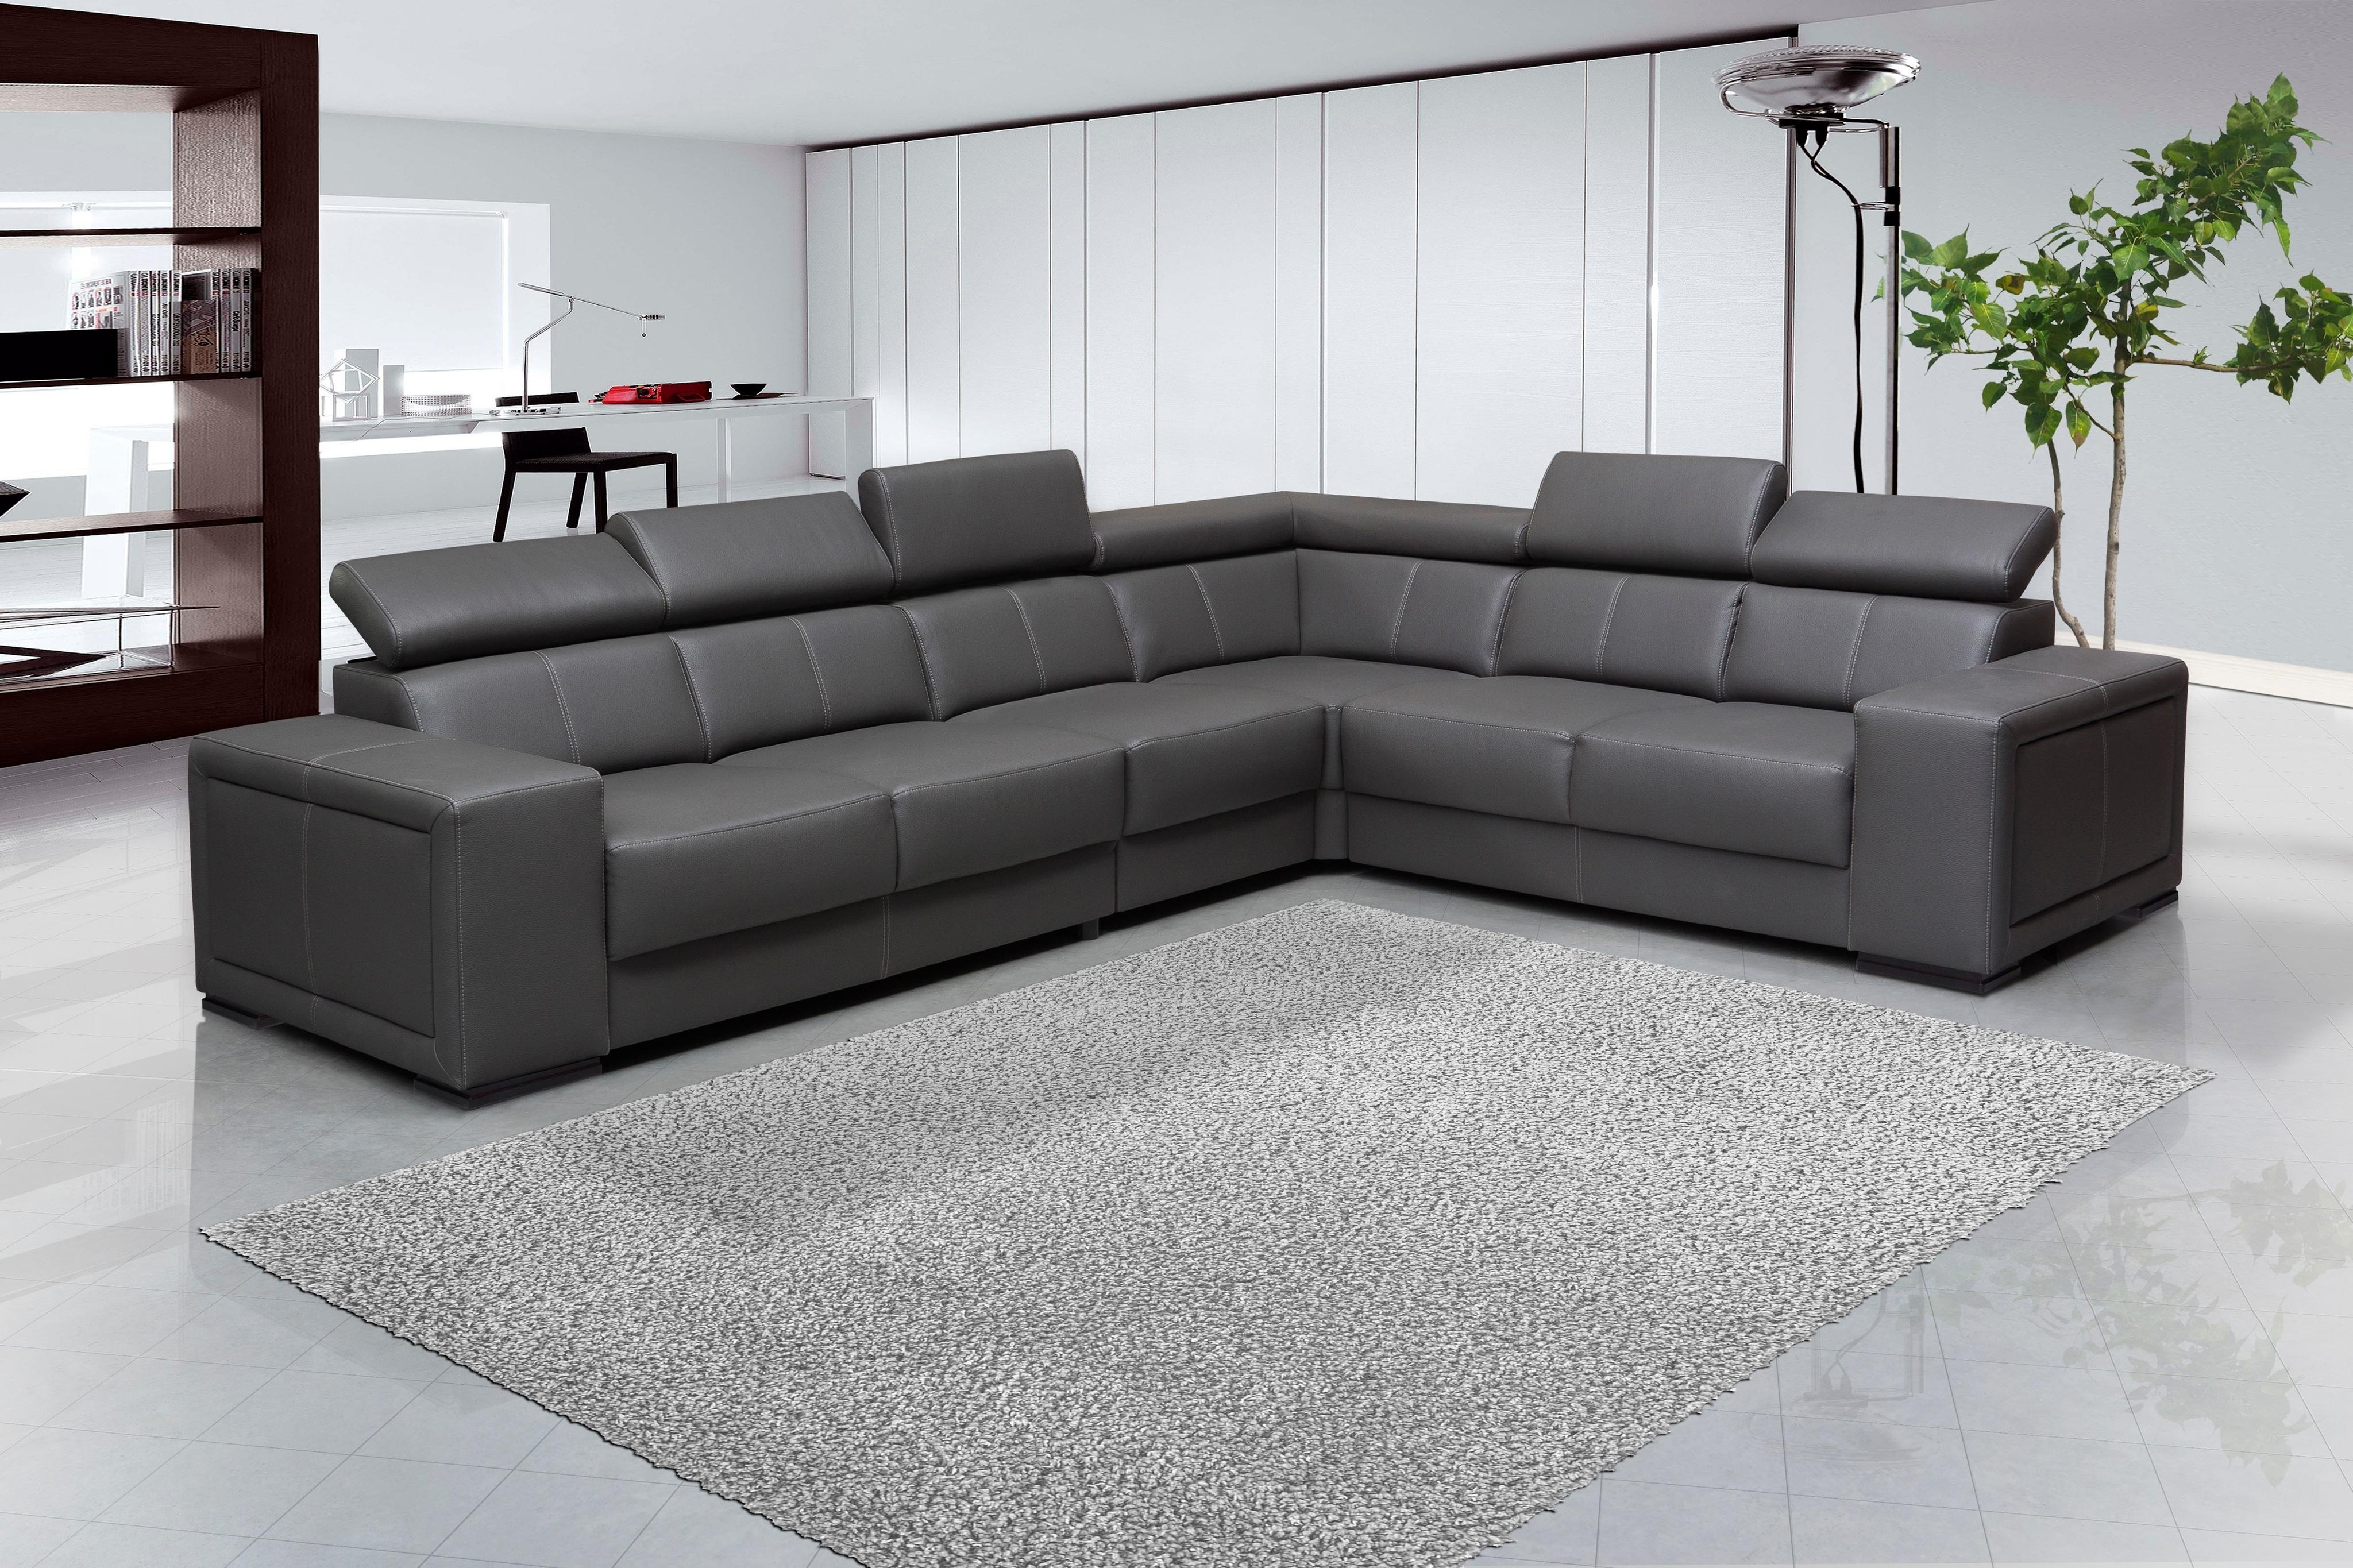 donate sofa in nyc 10 inch depth table free stock photo of carpet furniture gray